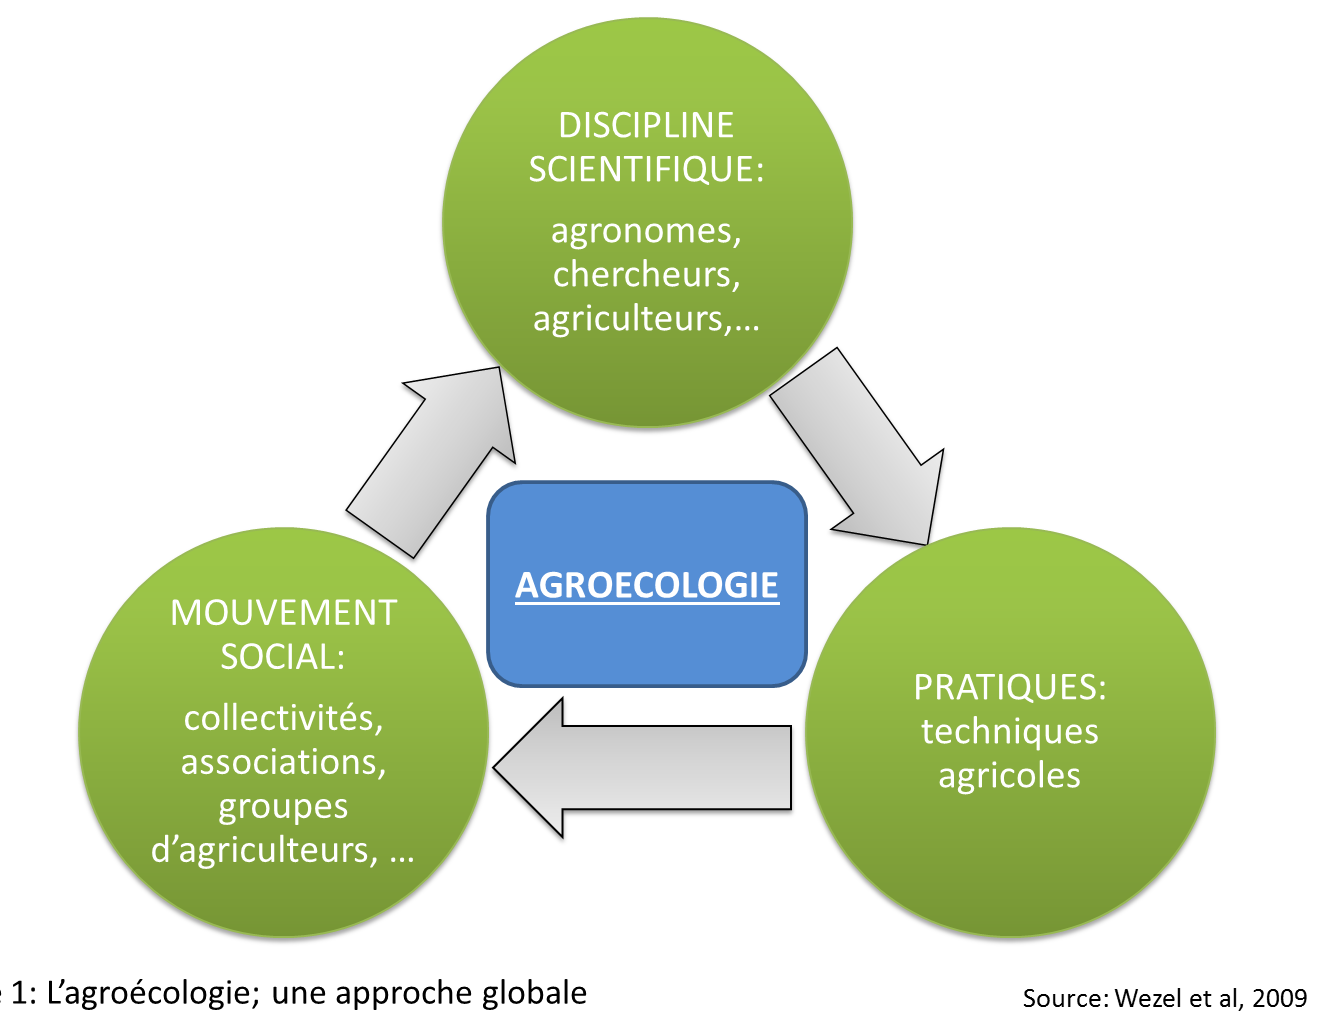 image lagroecologie_une_approche_globale.png (0.1MB)